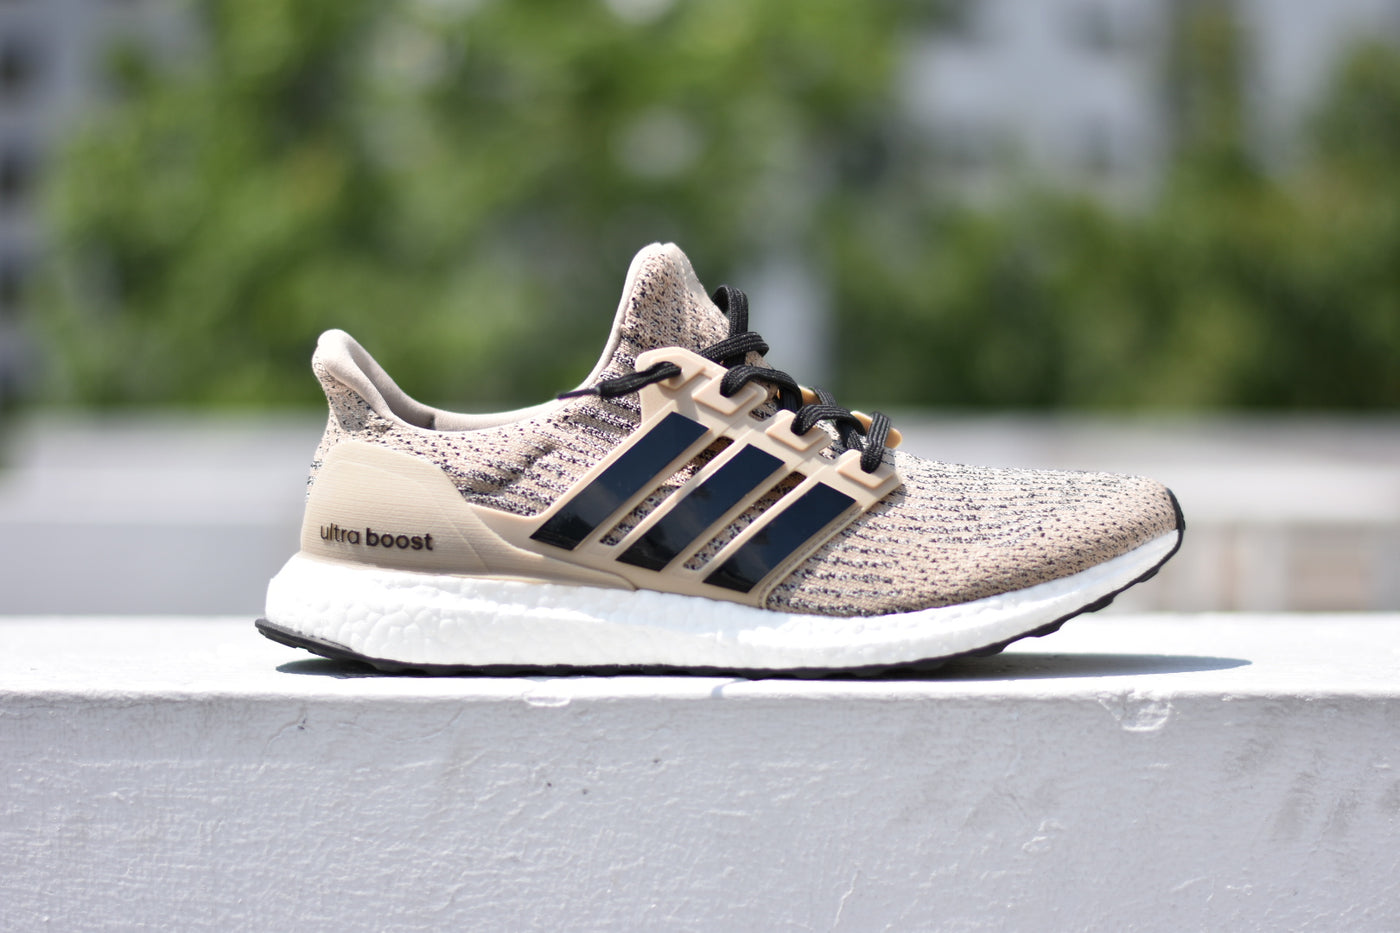 cae775ef8 Transform your Ultra Boost 3.0 Trace Khaki into a Limited Edition colorway